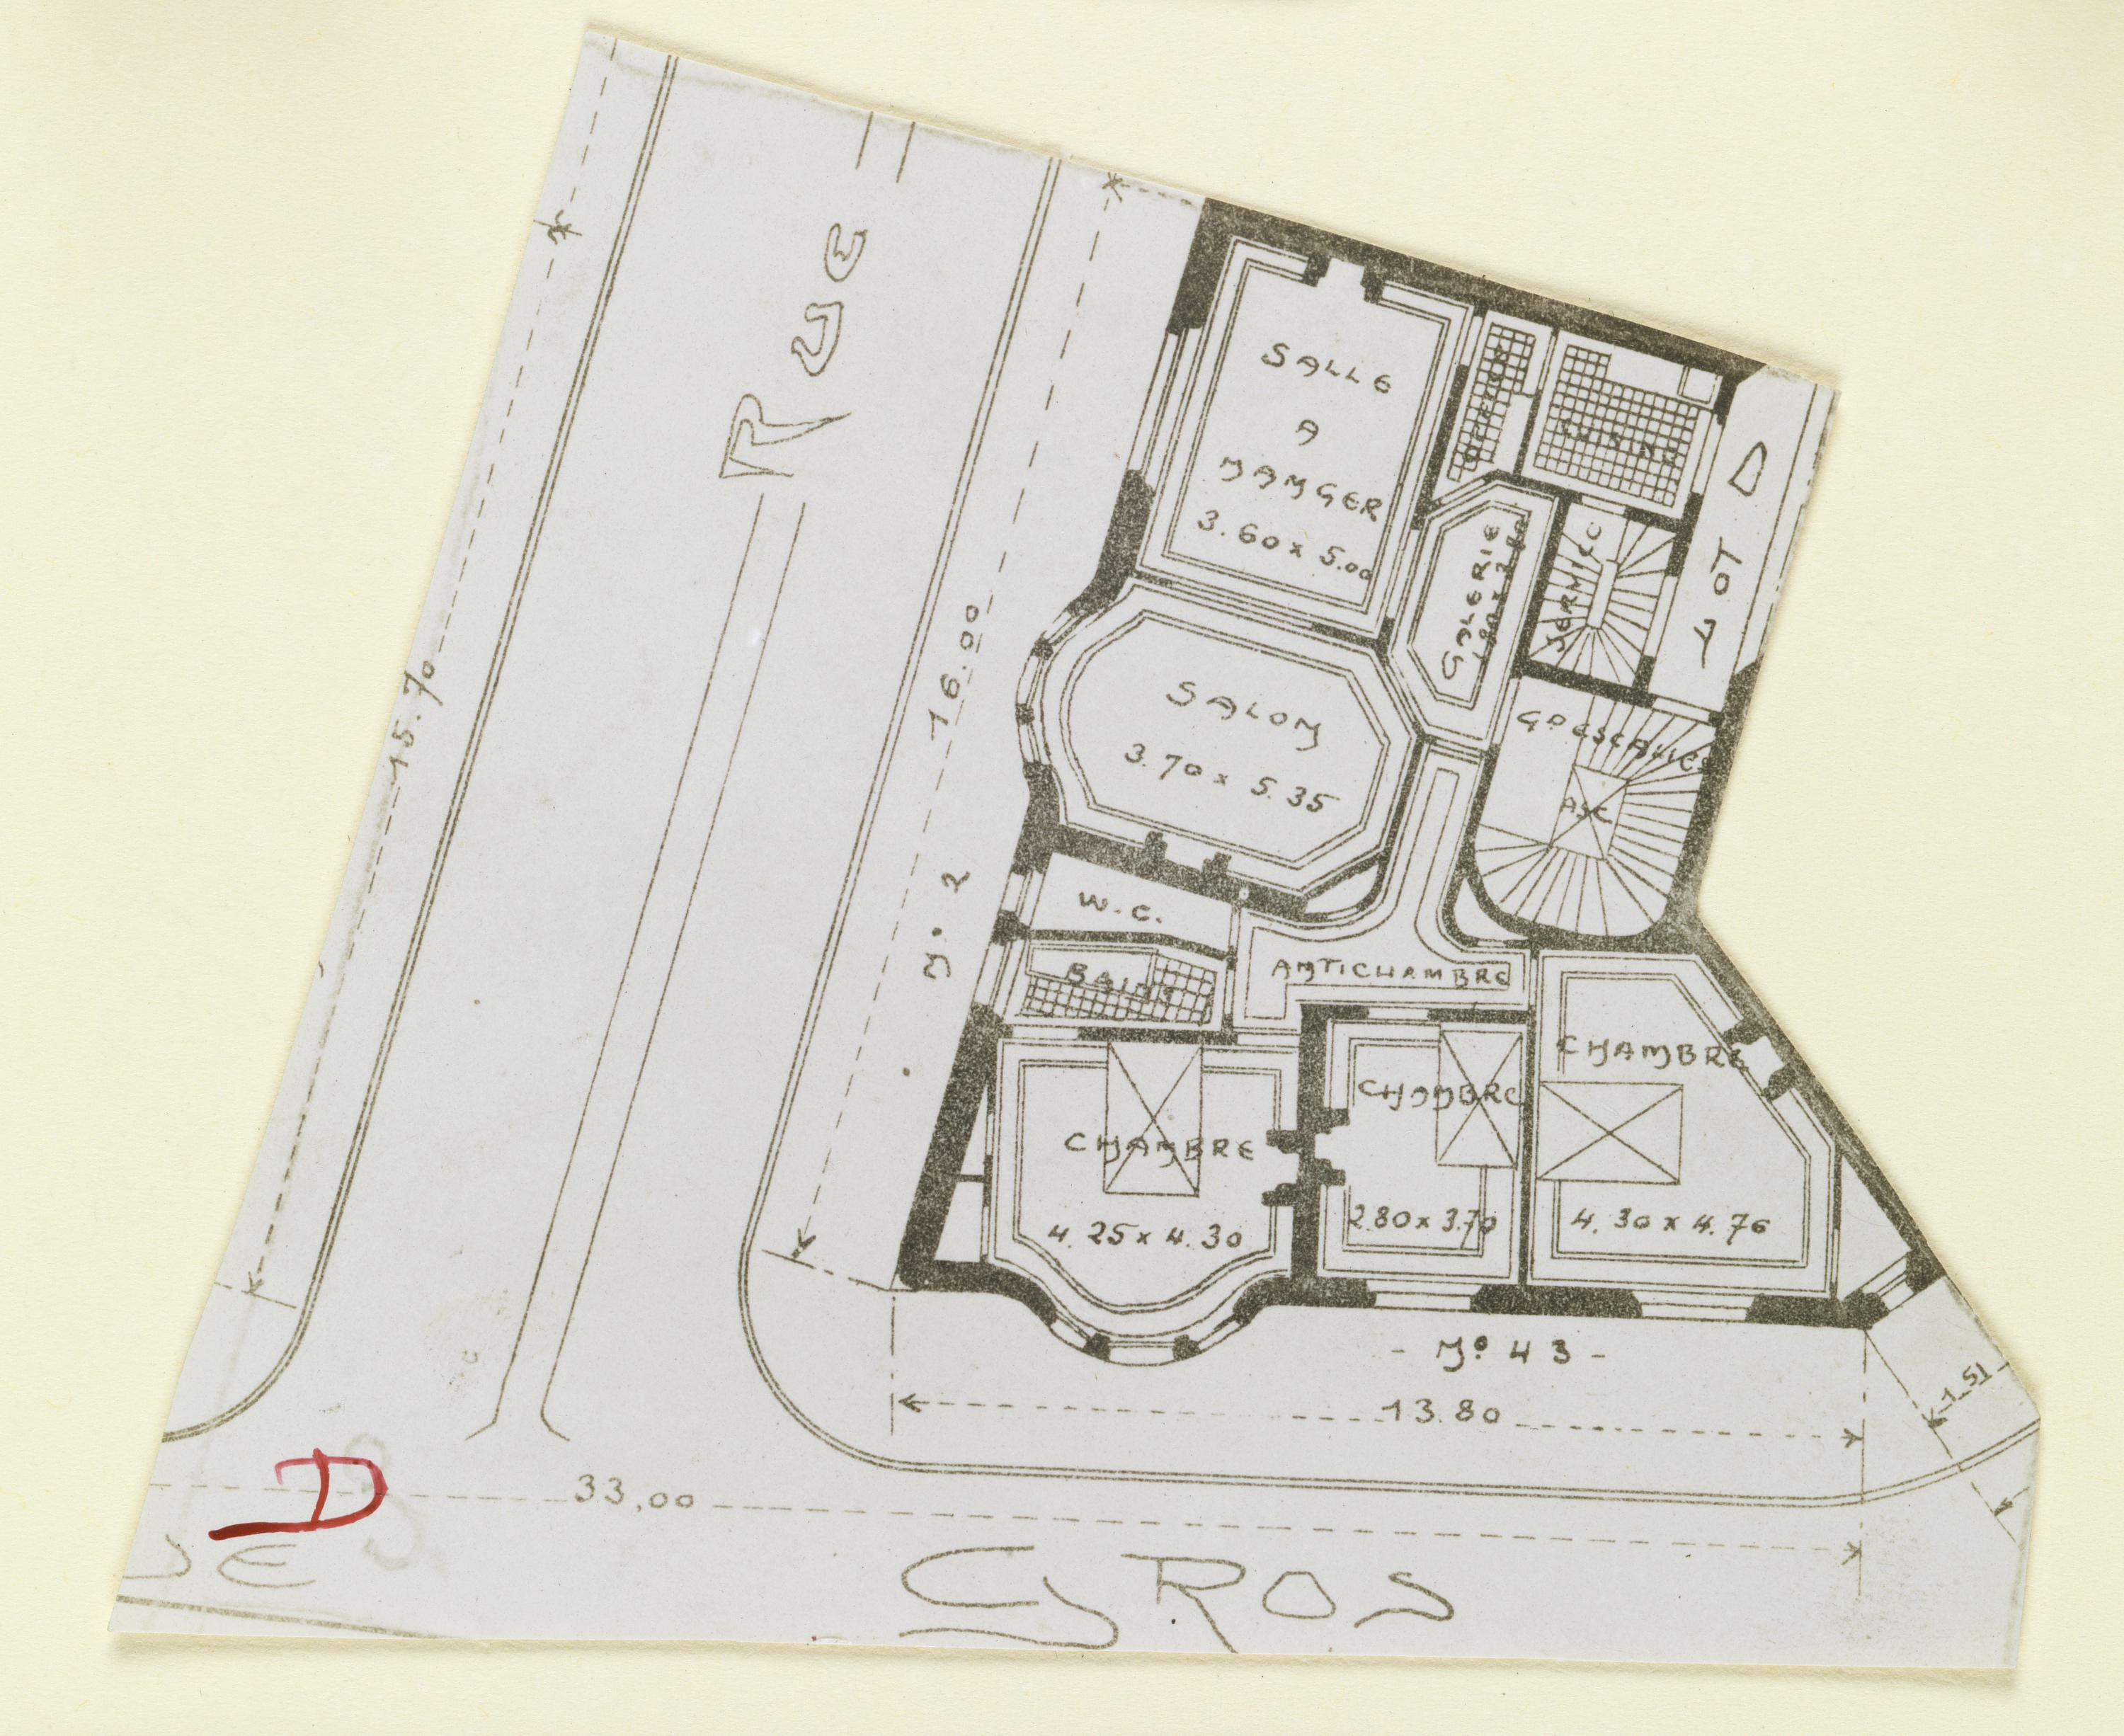 File:Photograph, Photograph of a Floor Plan for an Apartment ...